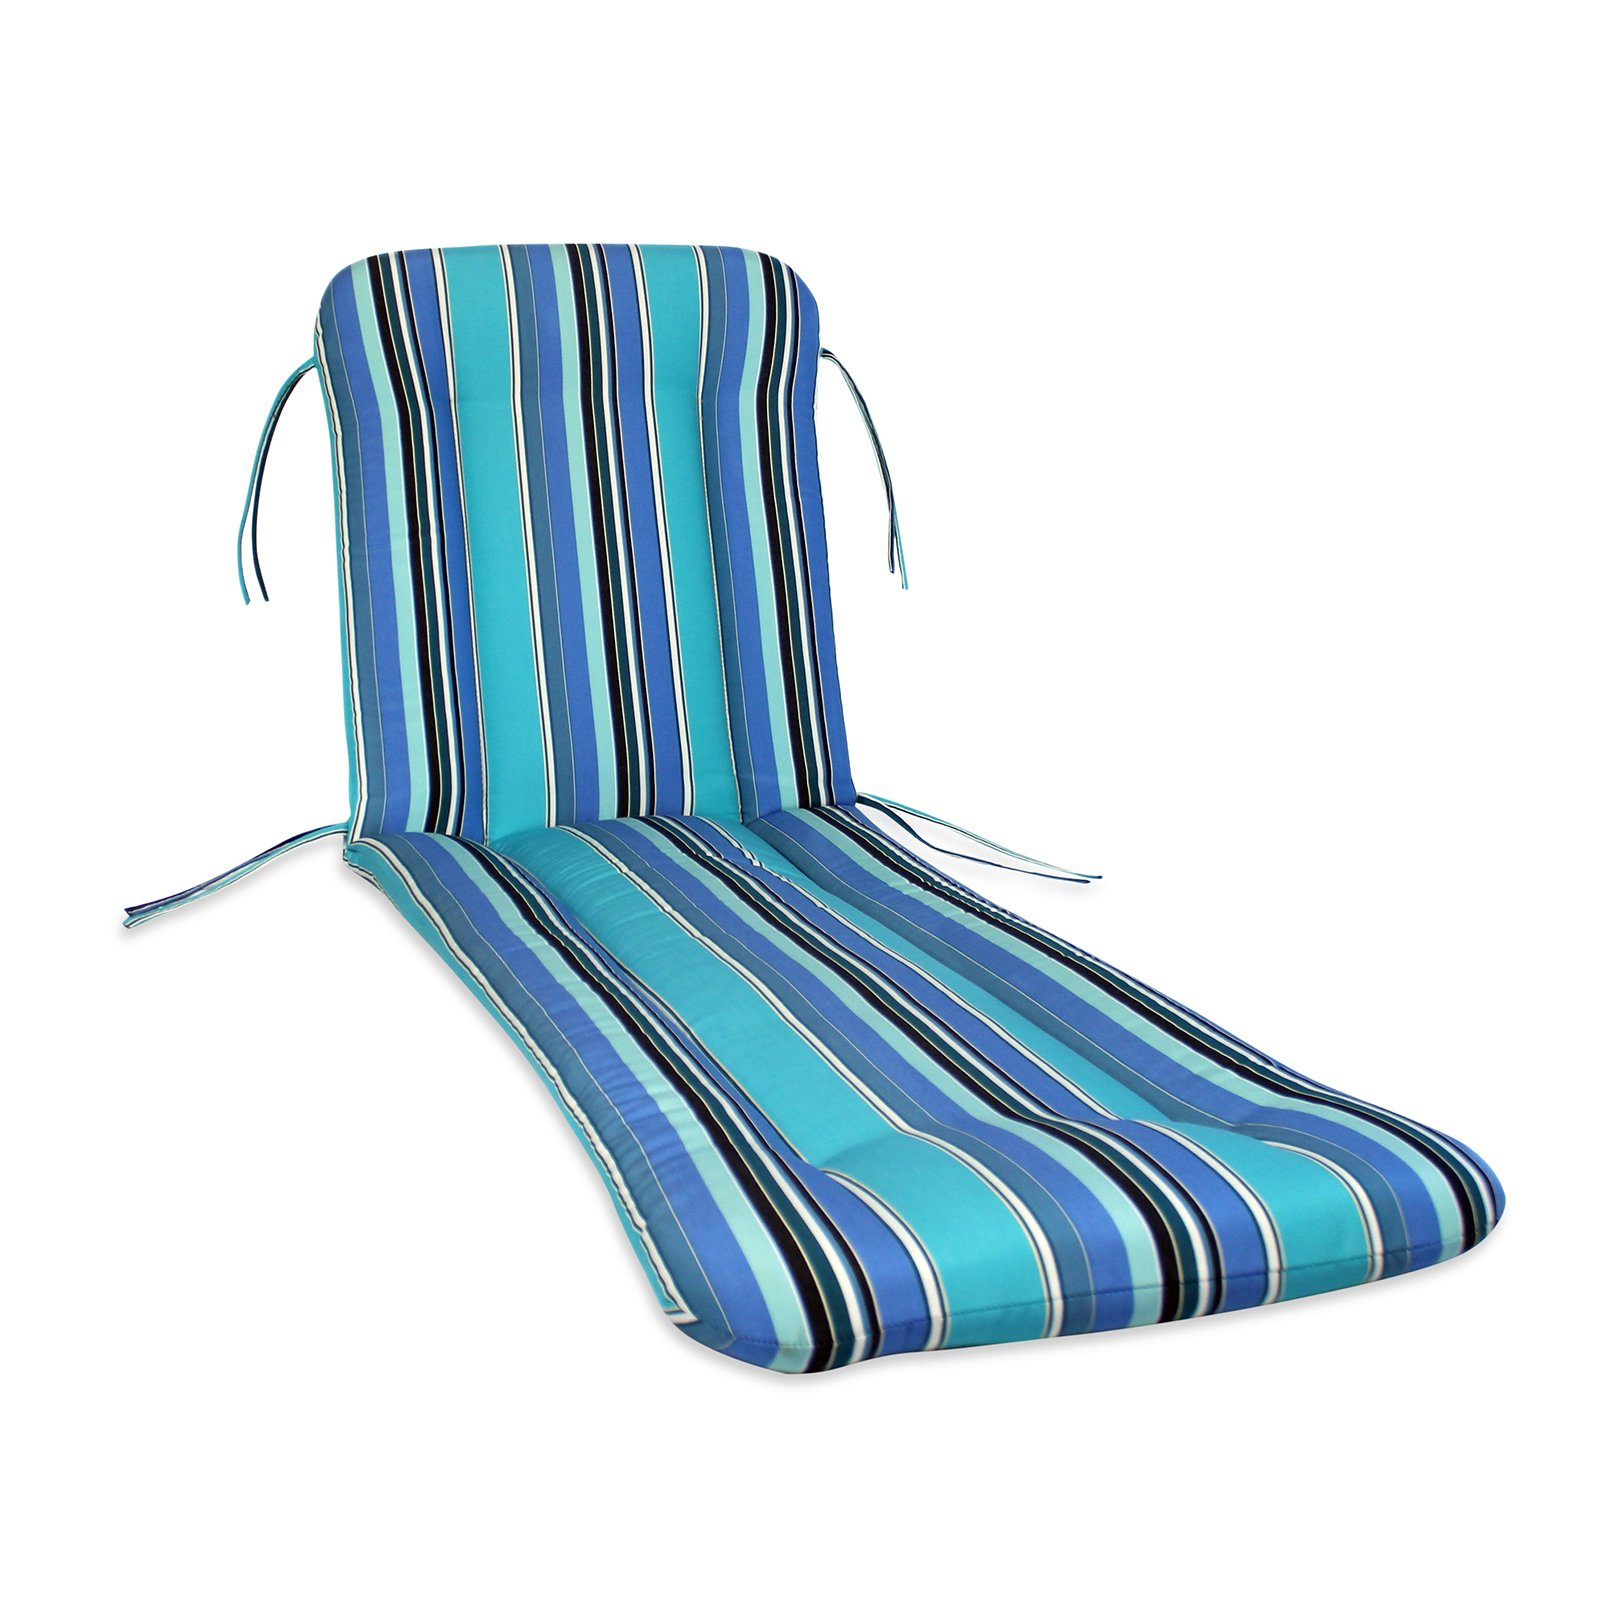 fort Classics Sunbrella Chaise Lounge Cushion Walmart